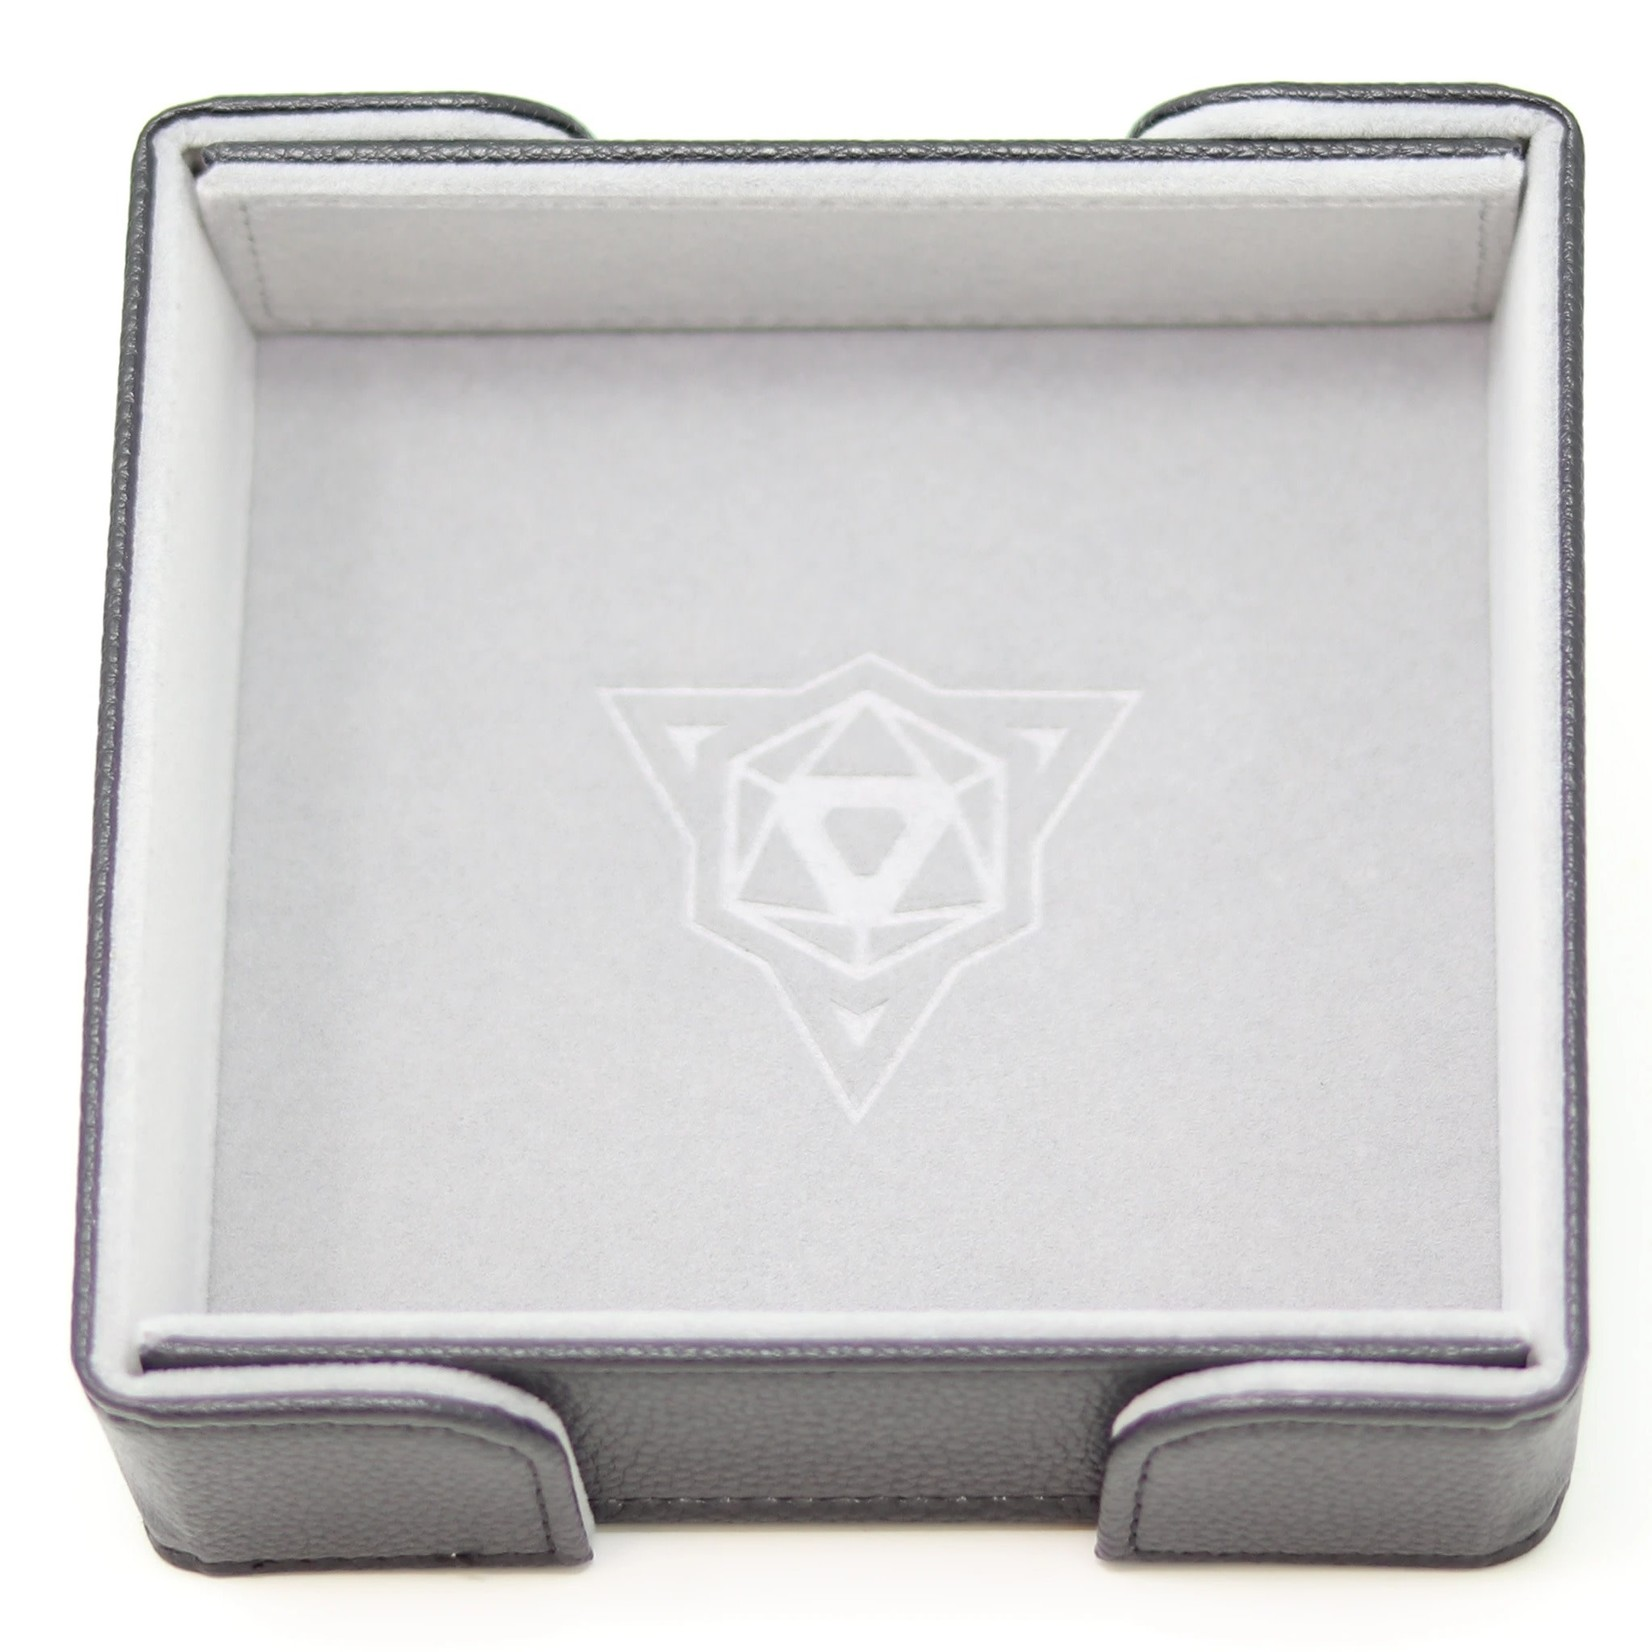 Die Hard Dice Dice Tray Magnetic Square Gray